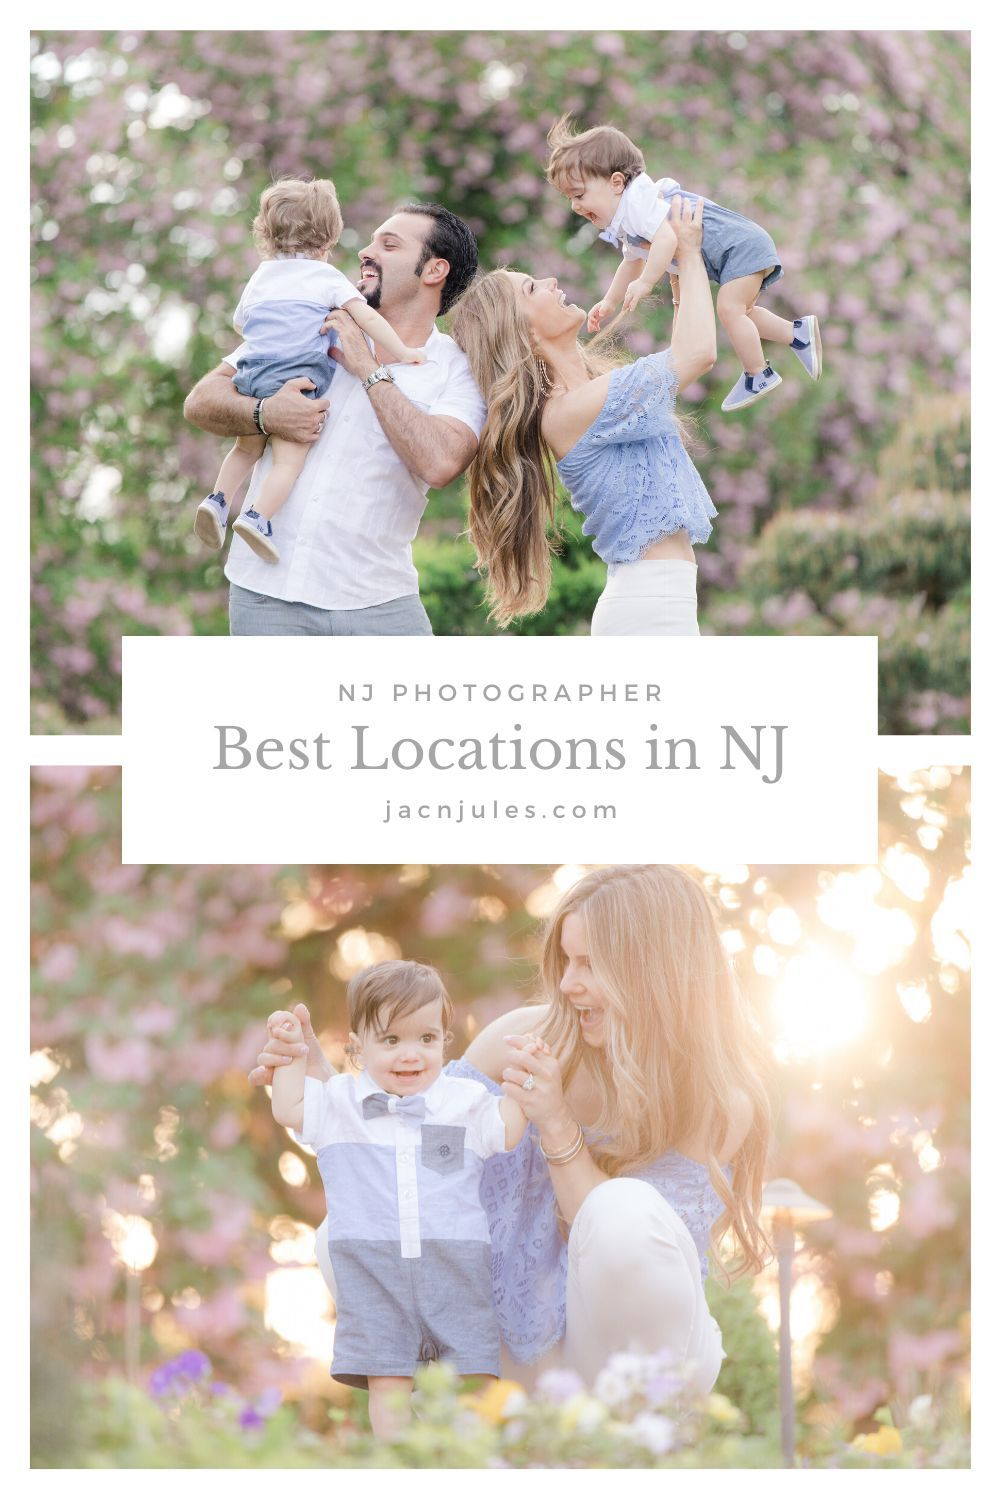 Best locations in NJ for family photos! -  We're listing some of our favorite locations for family, maternity and engagement photos on the b - #EngagementPhotosclassy #EngagementPhotosindian #EngagementPhotoswoods #Family #formalEngagementPhotos #locations #naturalEngagementPhotos #Photos #plussizeEngagementPhotos #rusticEngagementPhotos #whattowearforEngagementPhotos